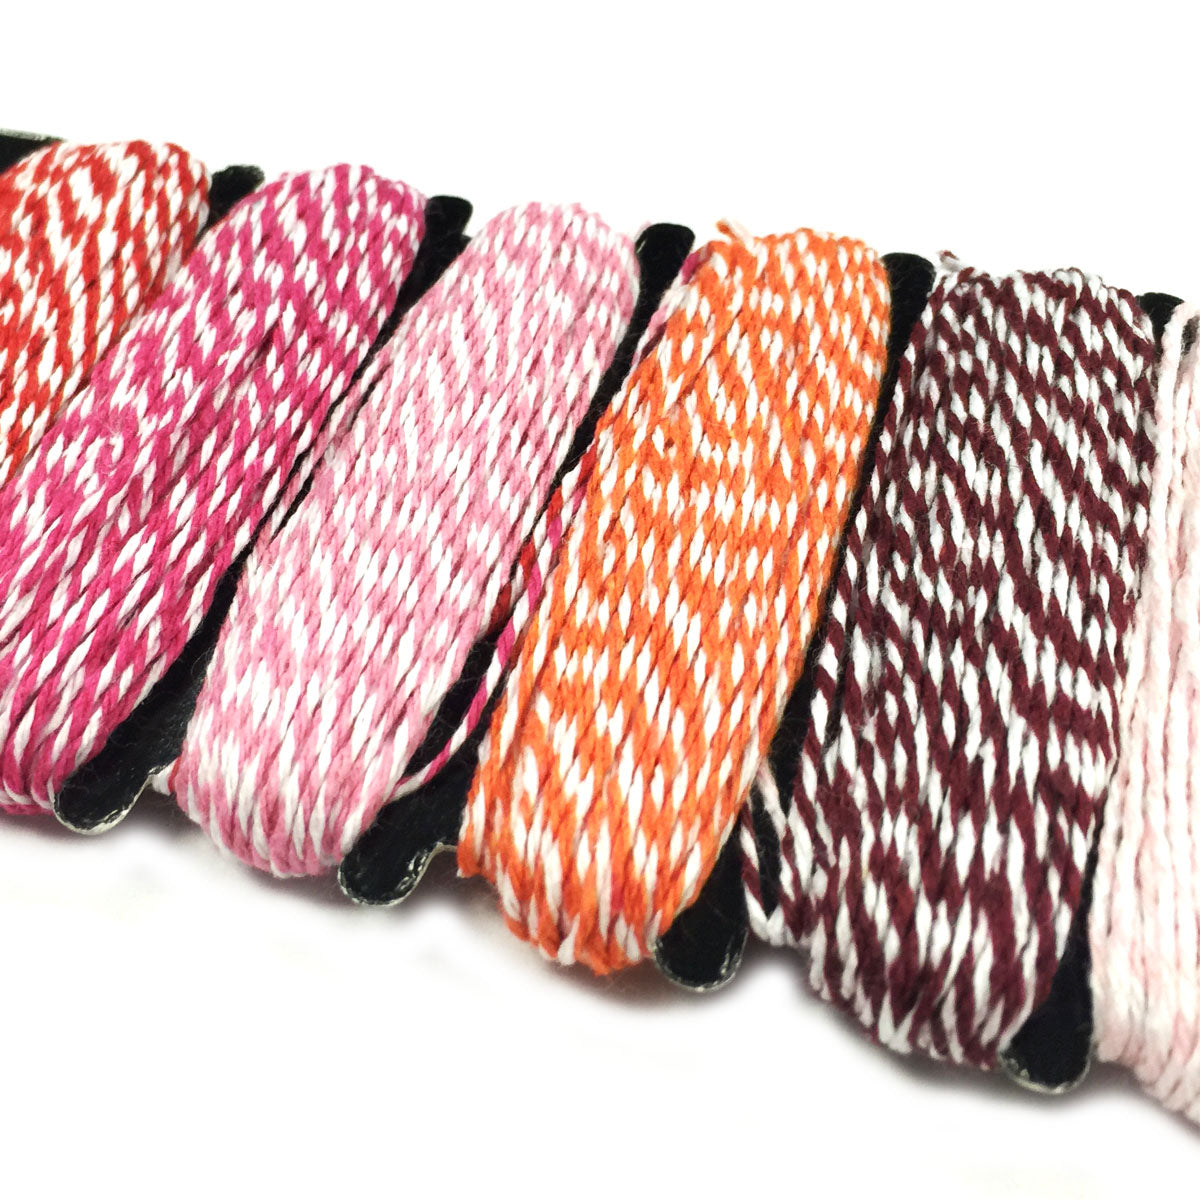 Wrapables Cotton Baker's Twine 4ply 60 Yards (Set of 6 Colors x 10 Yards)